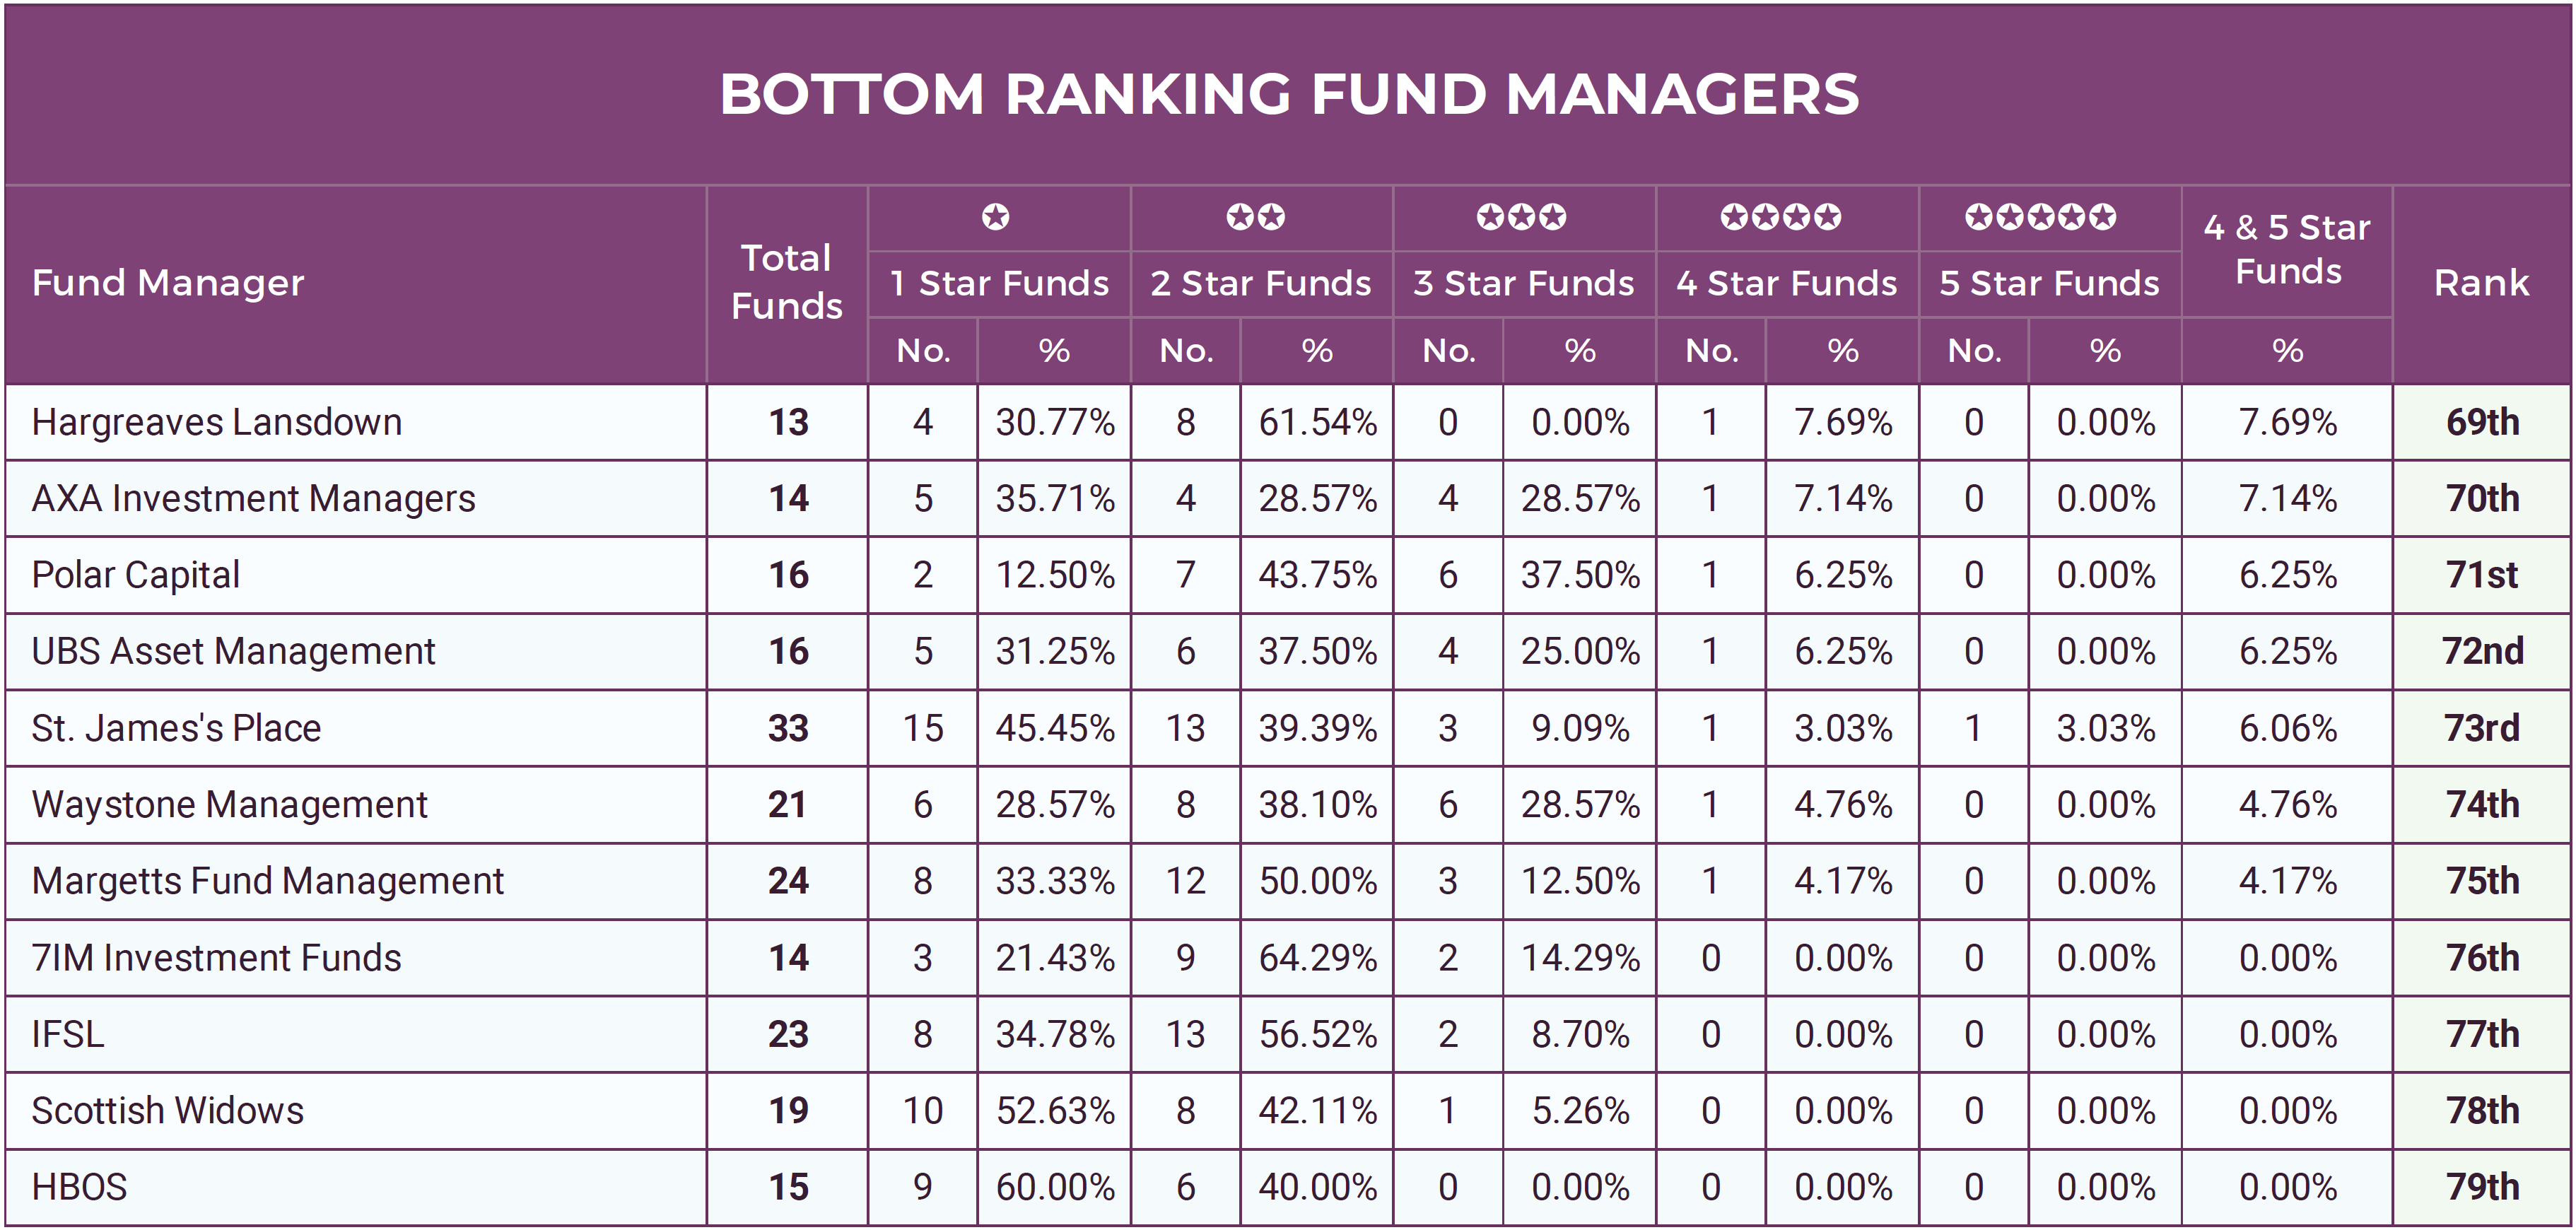 Bottom Ranking Fund Managers